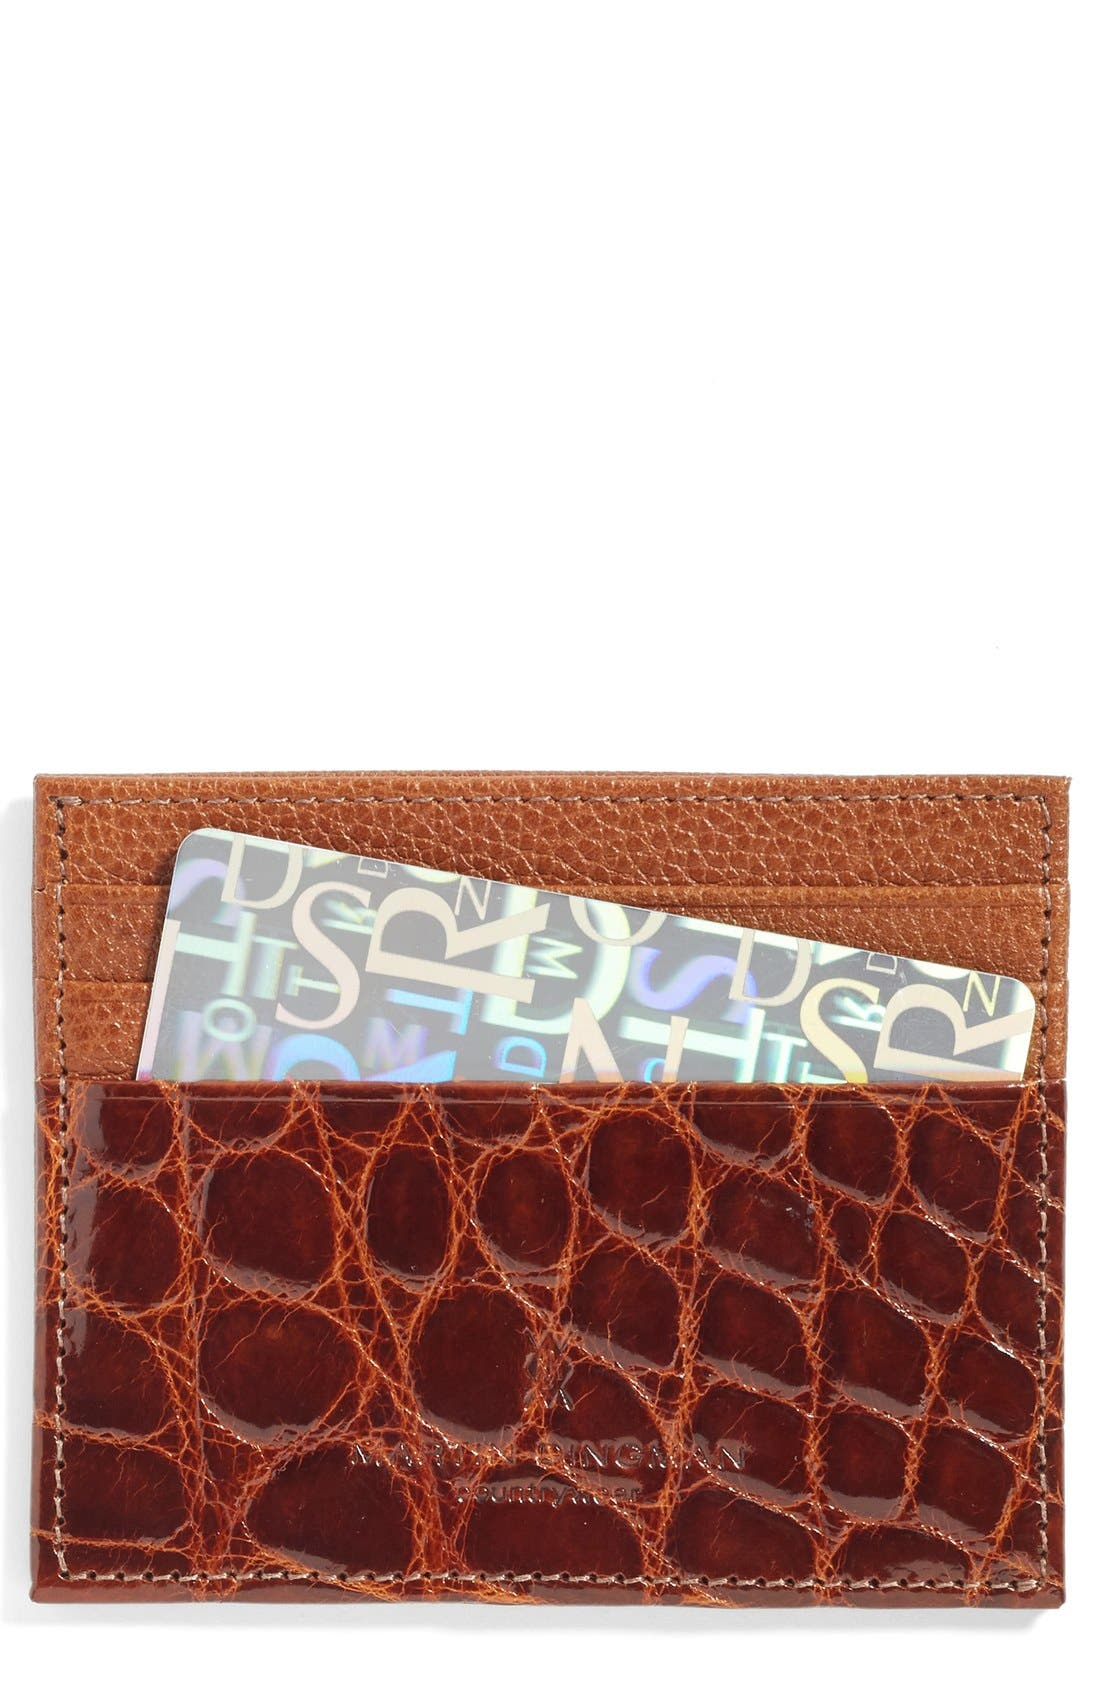 Executive Leather Card Case,                             Main thumbnail 1, color,                             Chestnut